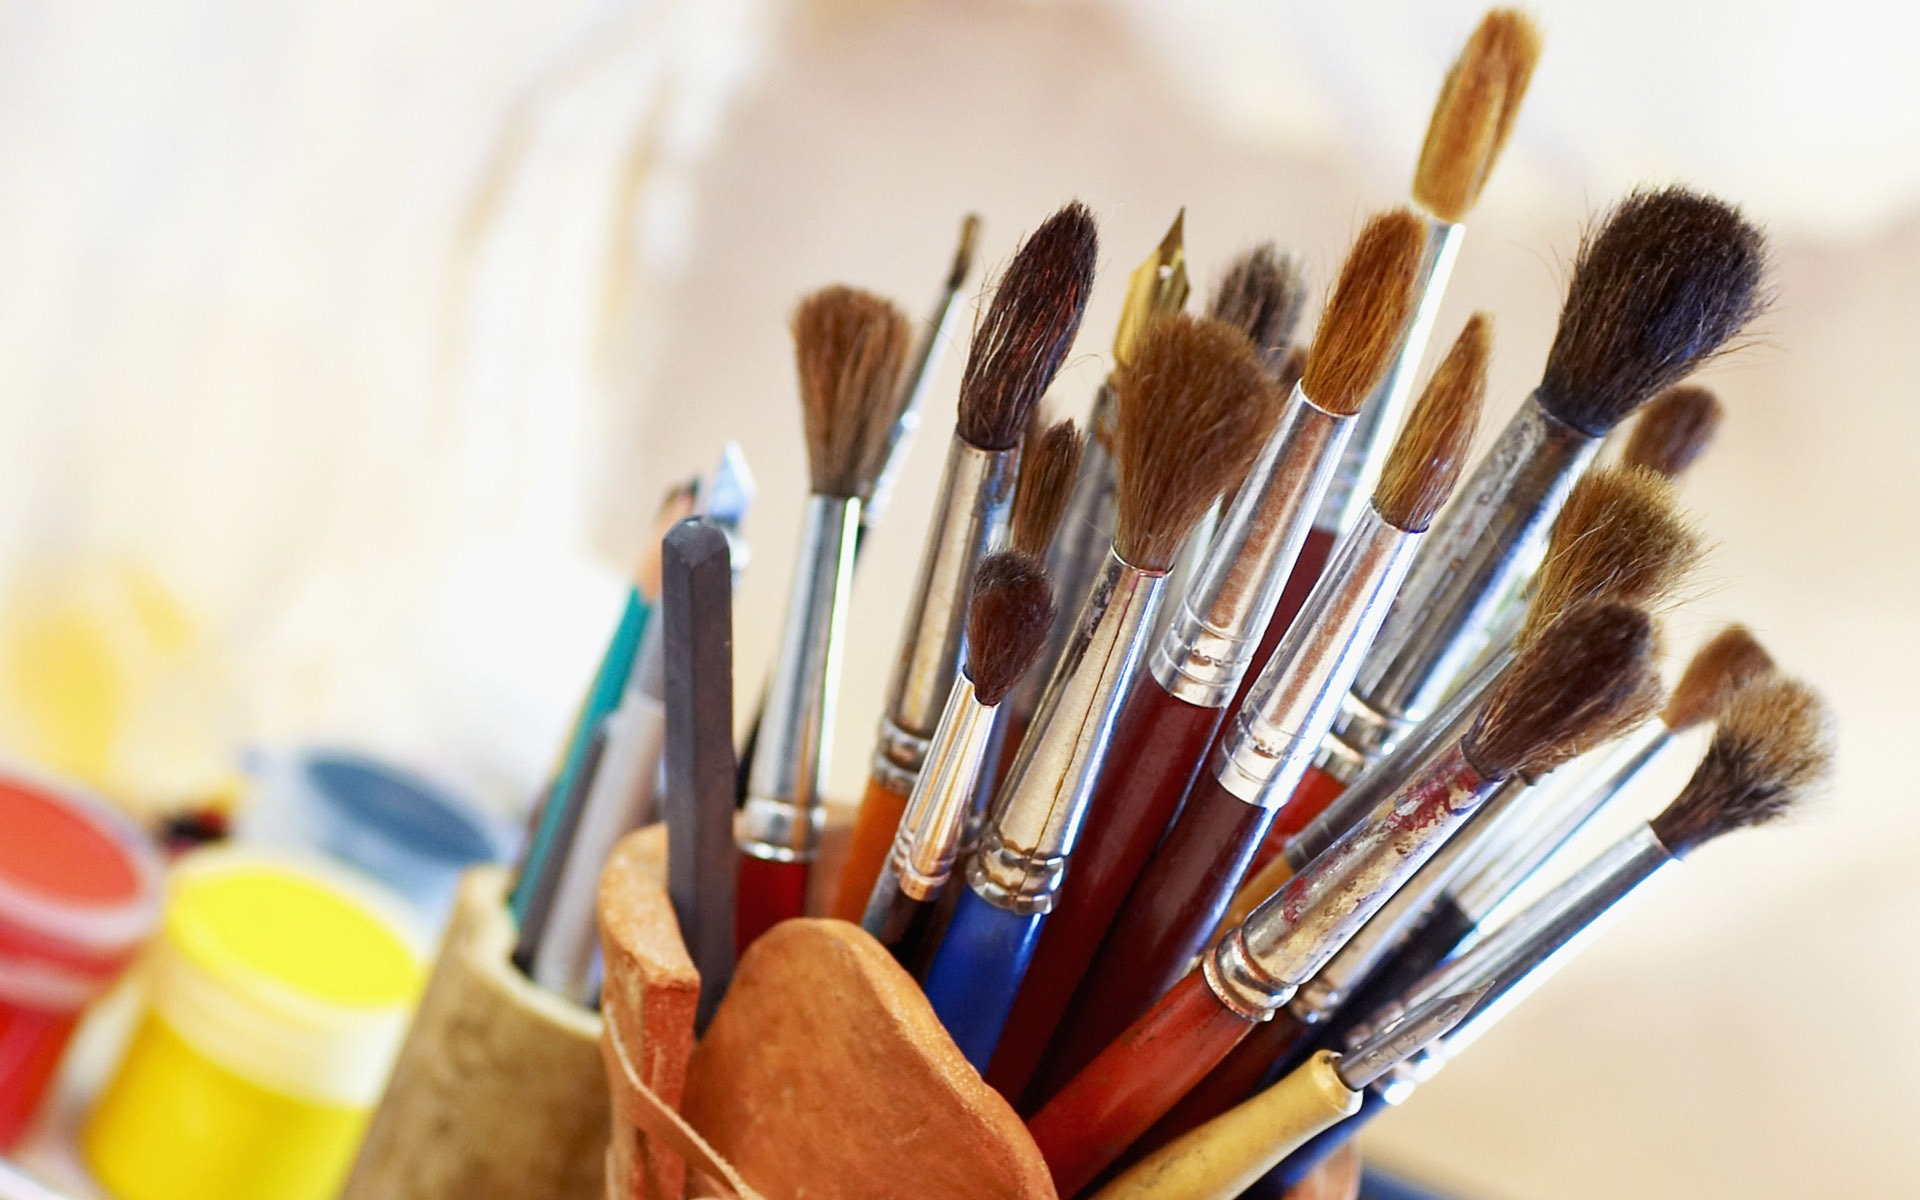 Colorful Wallpaper Paint Brushes - Paint Brushes - HD Wallpaper